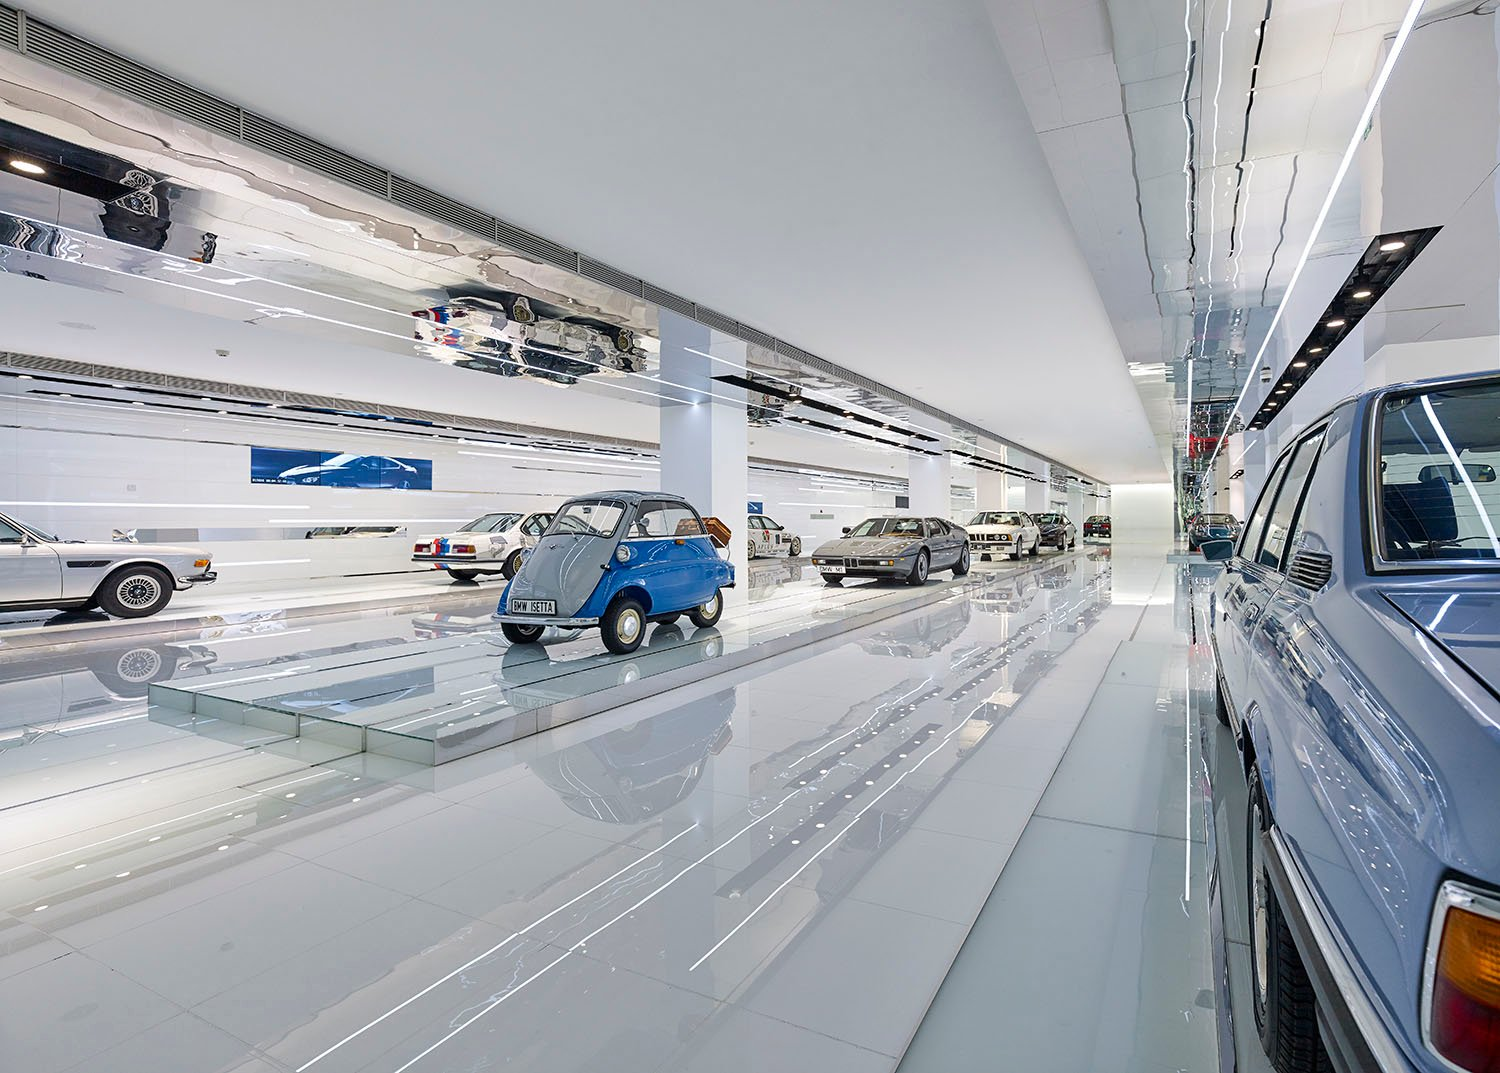 The prized cars highlighted on long platforms  YANG Chao Ying